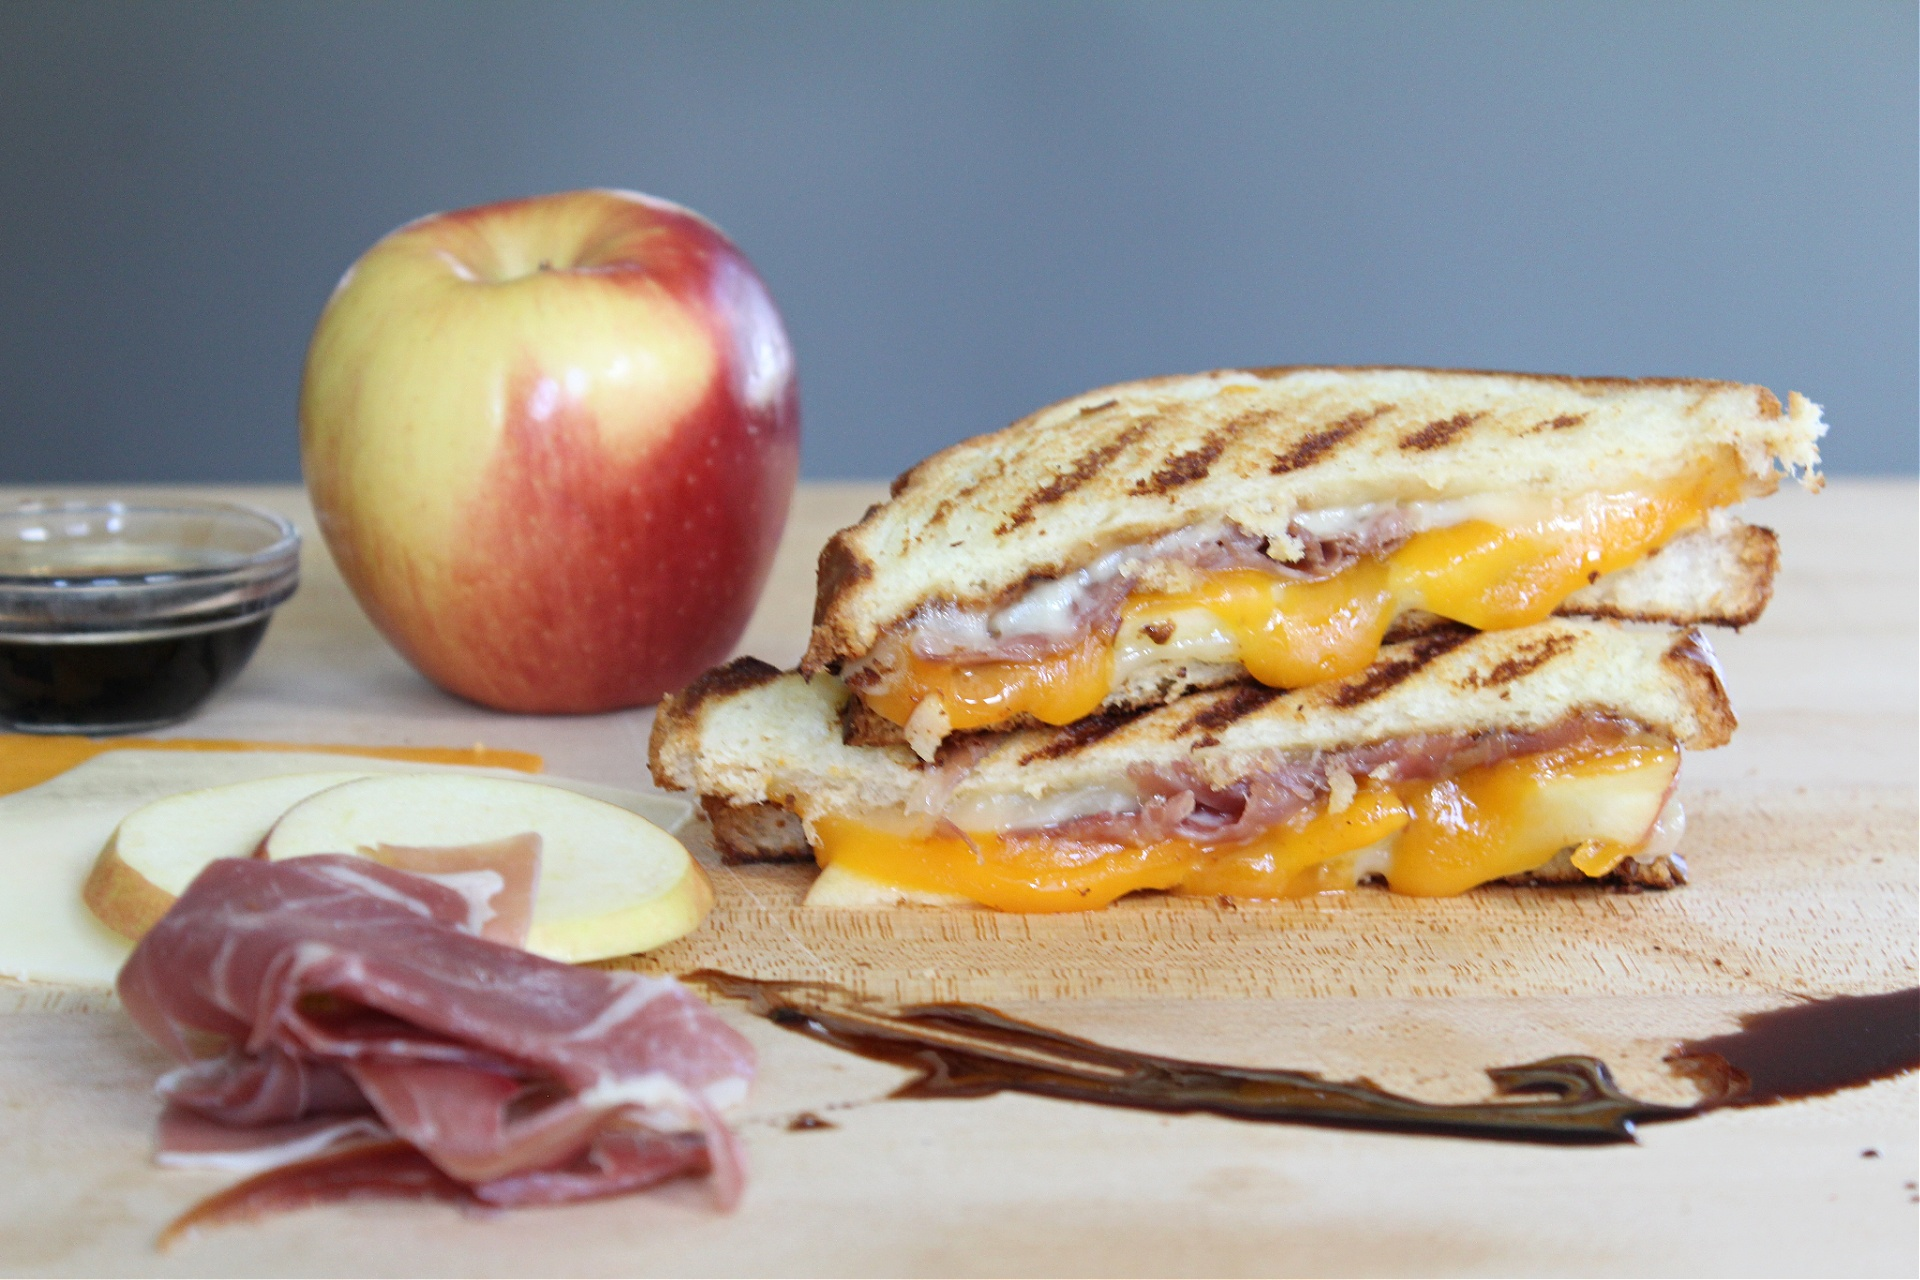 How to make a Prosciutto and Apple Grilled Cheese Sandwich